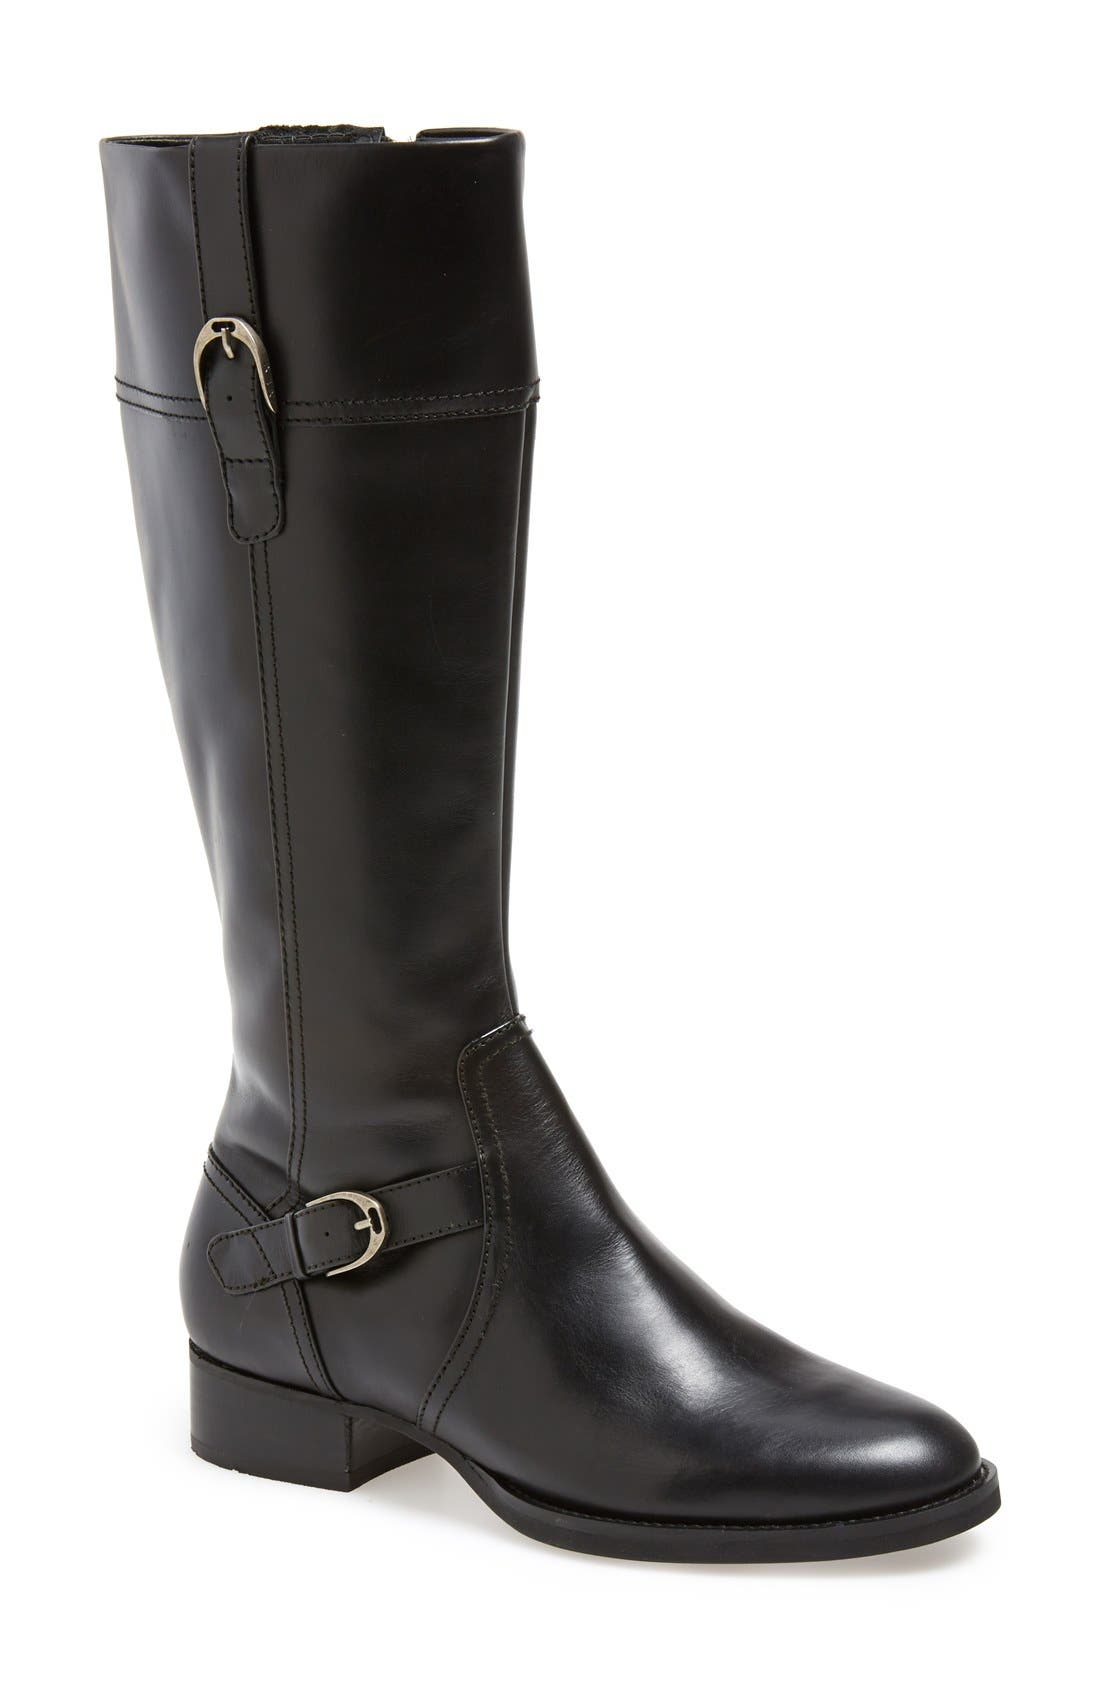 Alternate Image 1 Selected - Ariat 'York' Boot